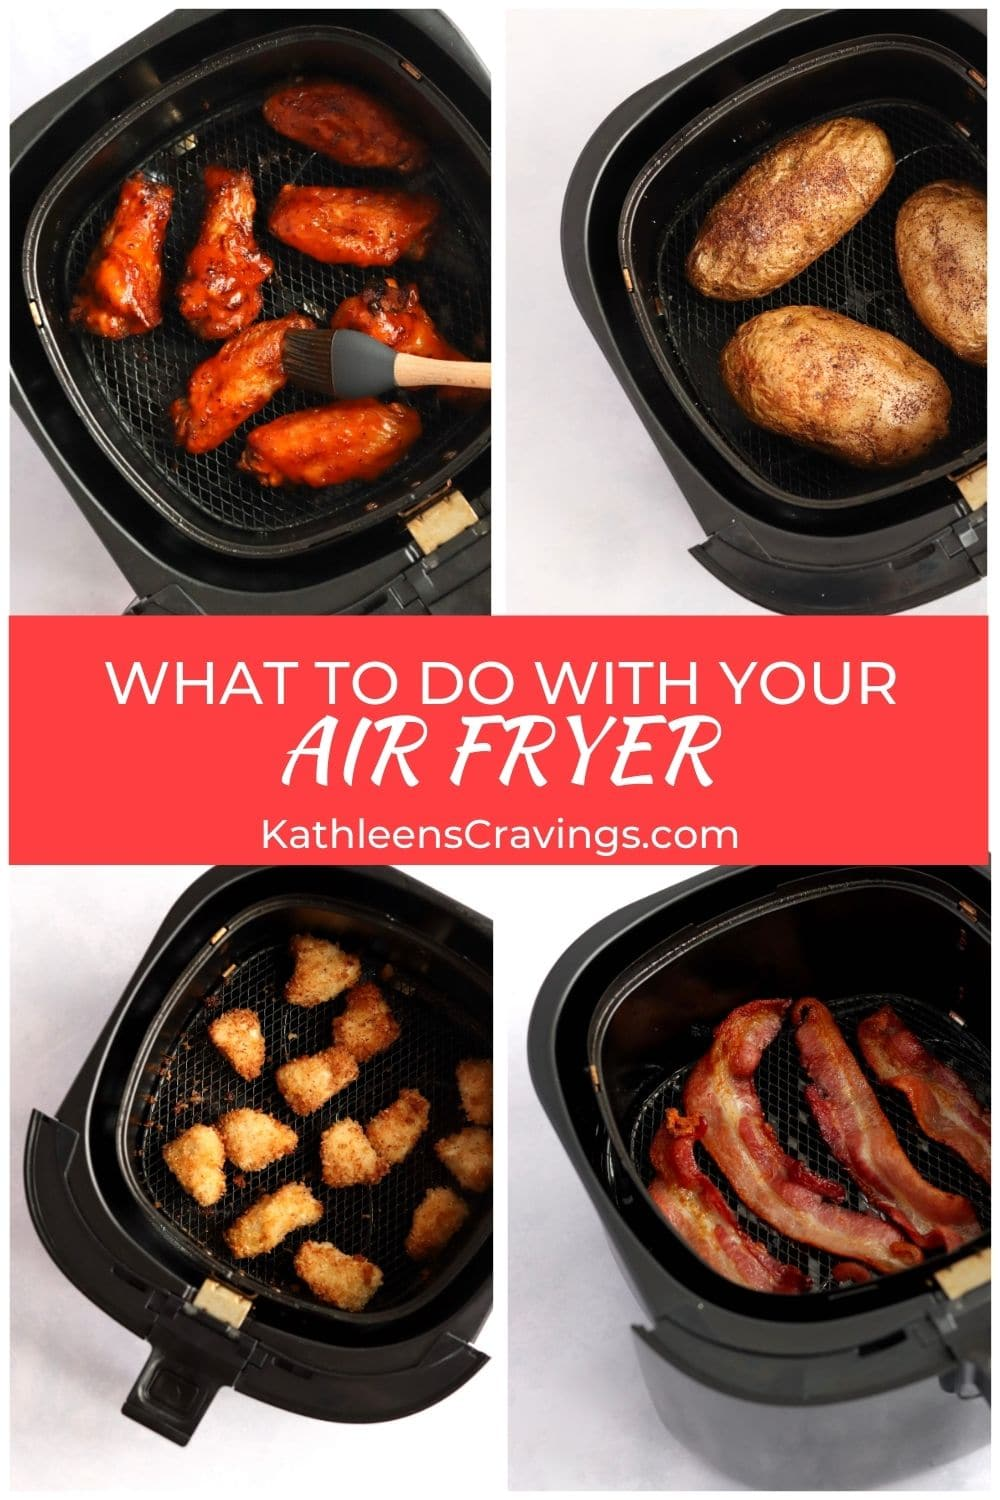 What to do with your air fryer and pictures of recipes in an air fryer